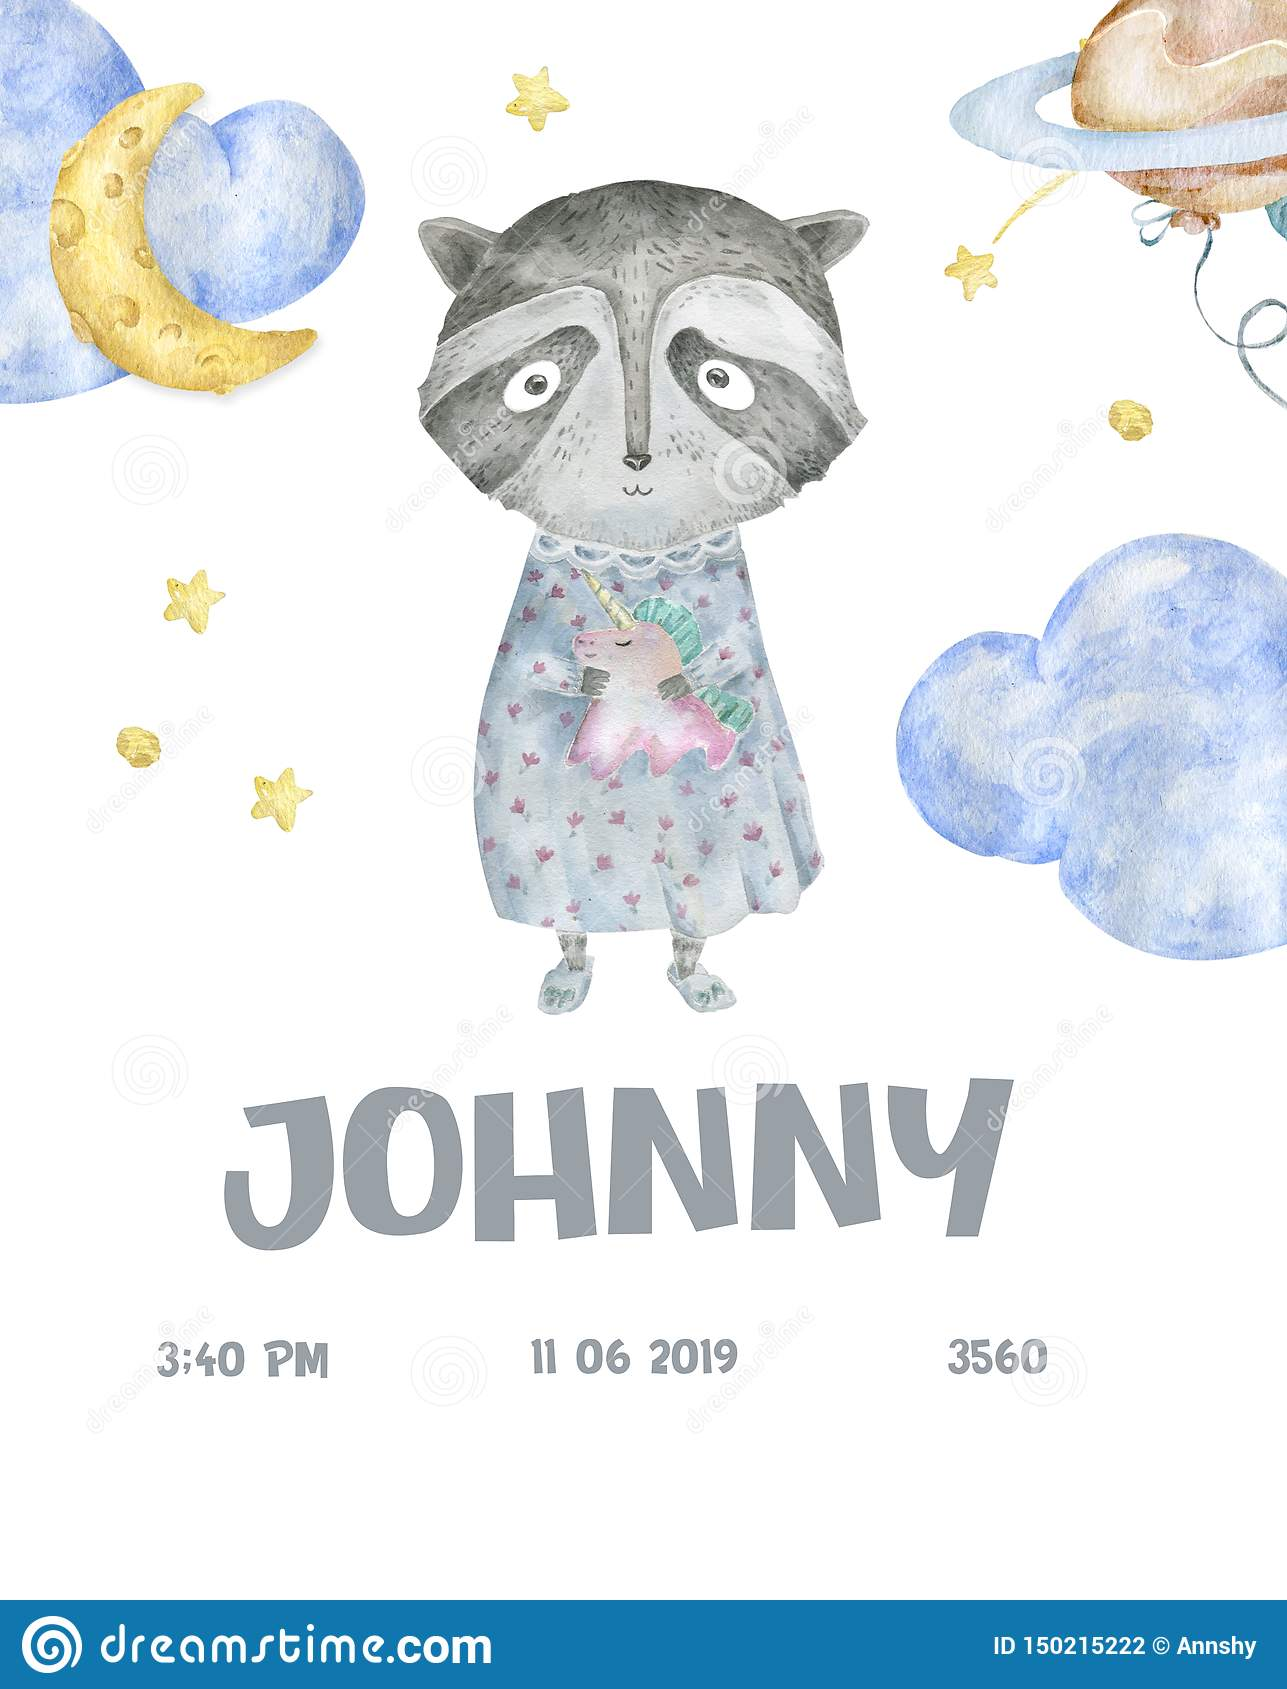 Cute woodland animals cartoon illustration for baby shower card template. Greeting, born, invite design card watercolor